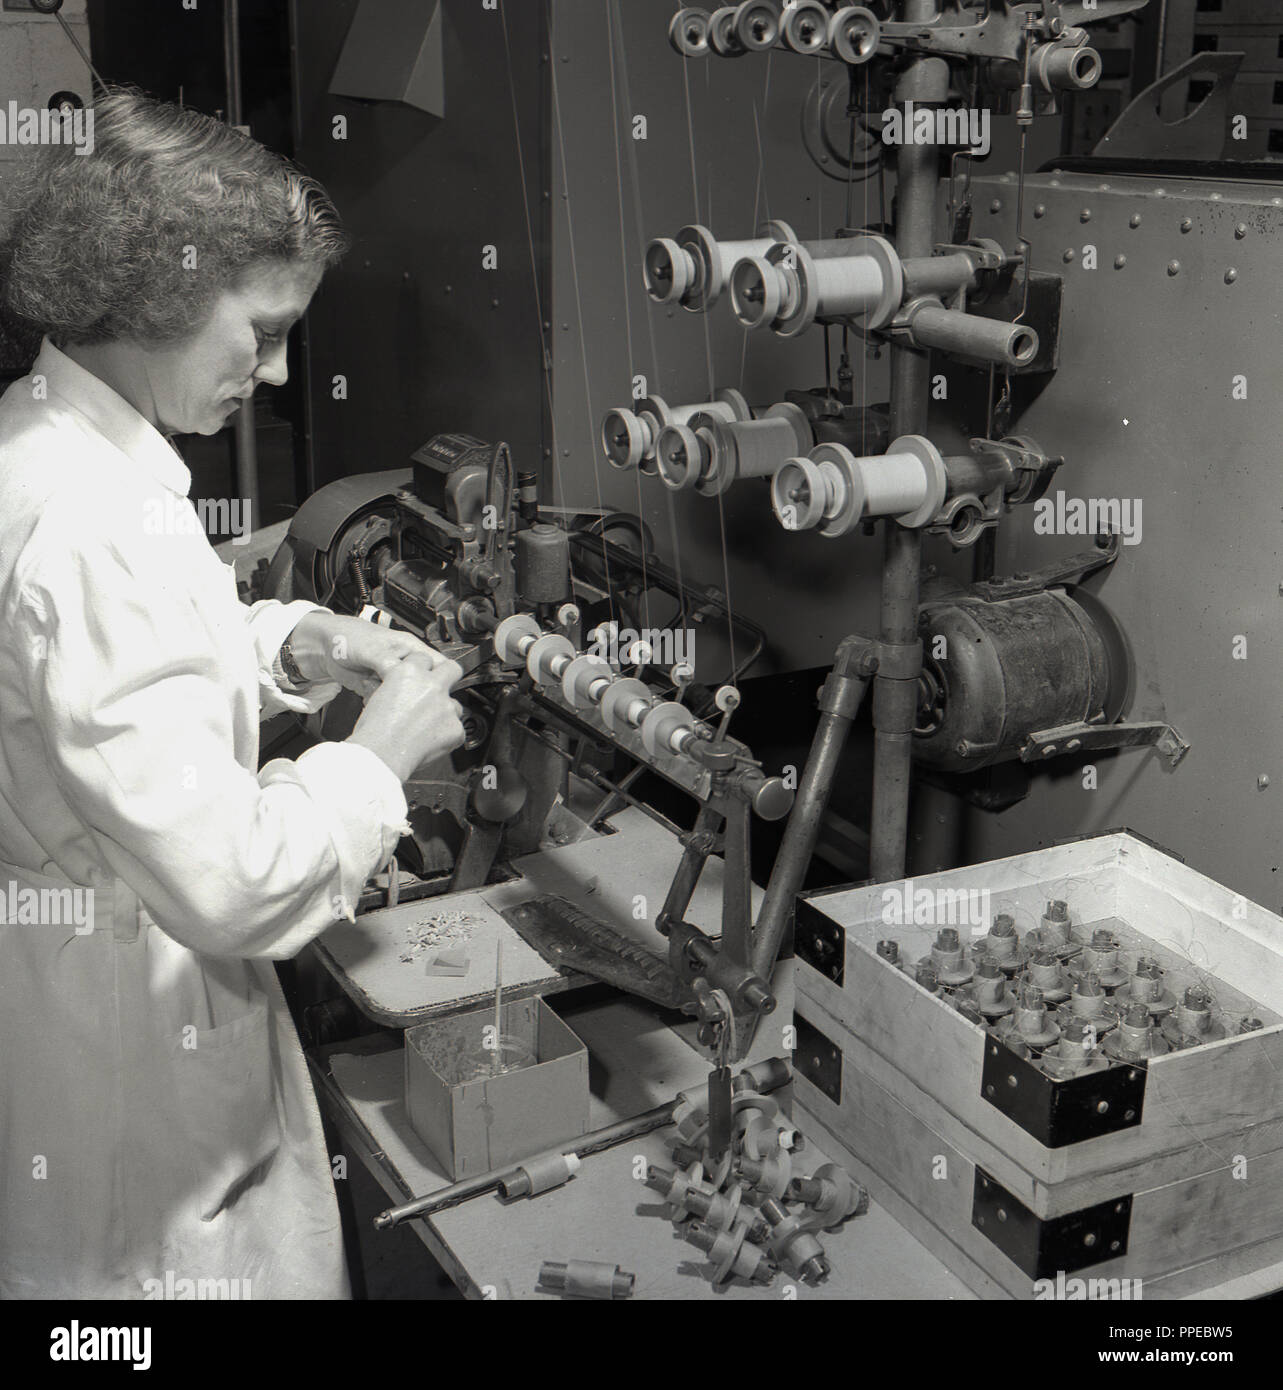 1950s, female worker checking parts for Bush Radio, a leading British electronics manufacturer of radios and TV sets in this era. - Stock Image